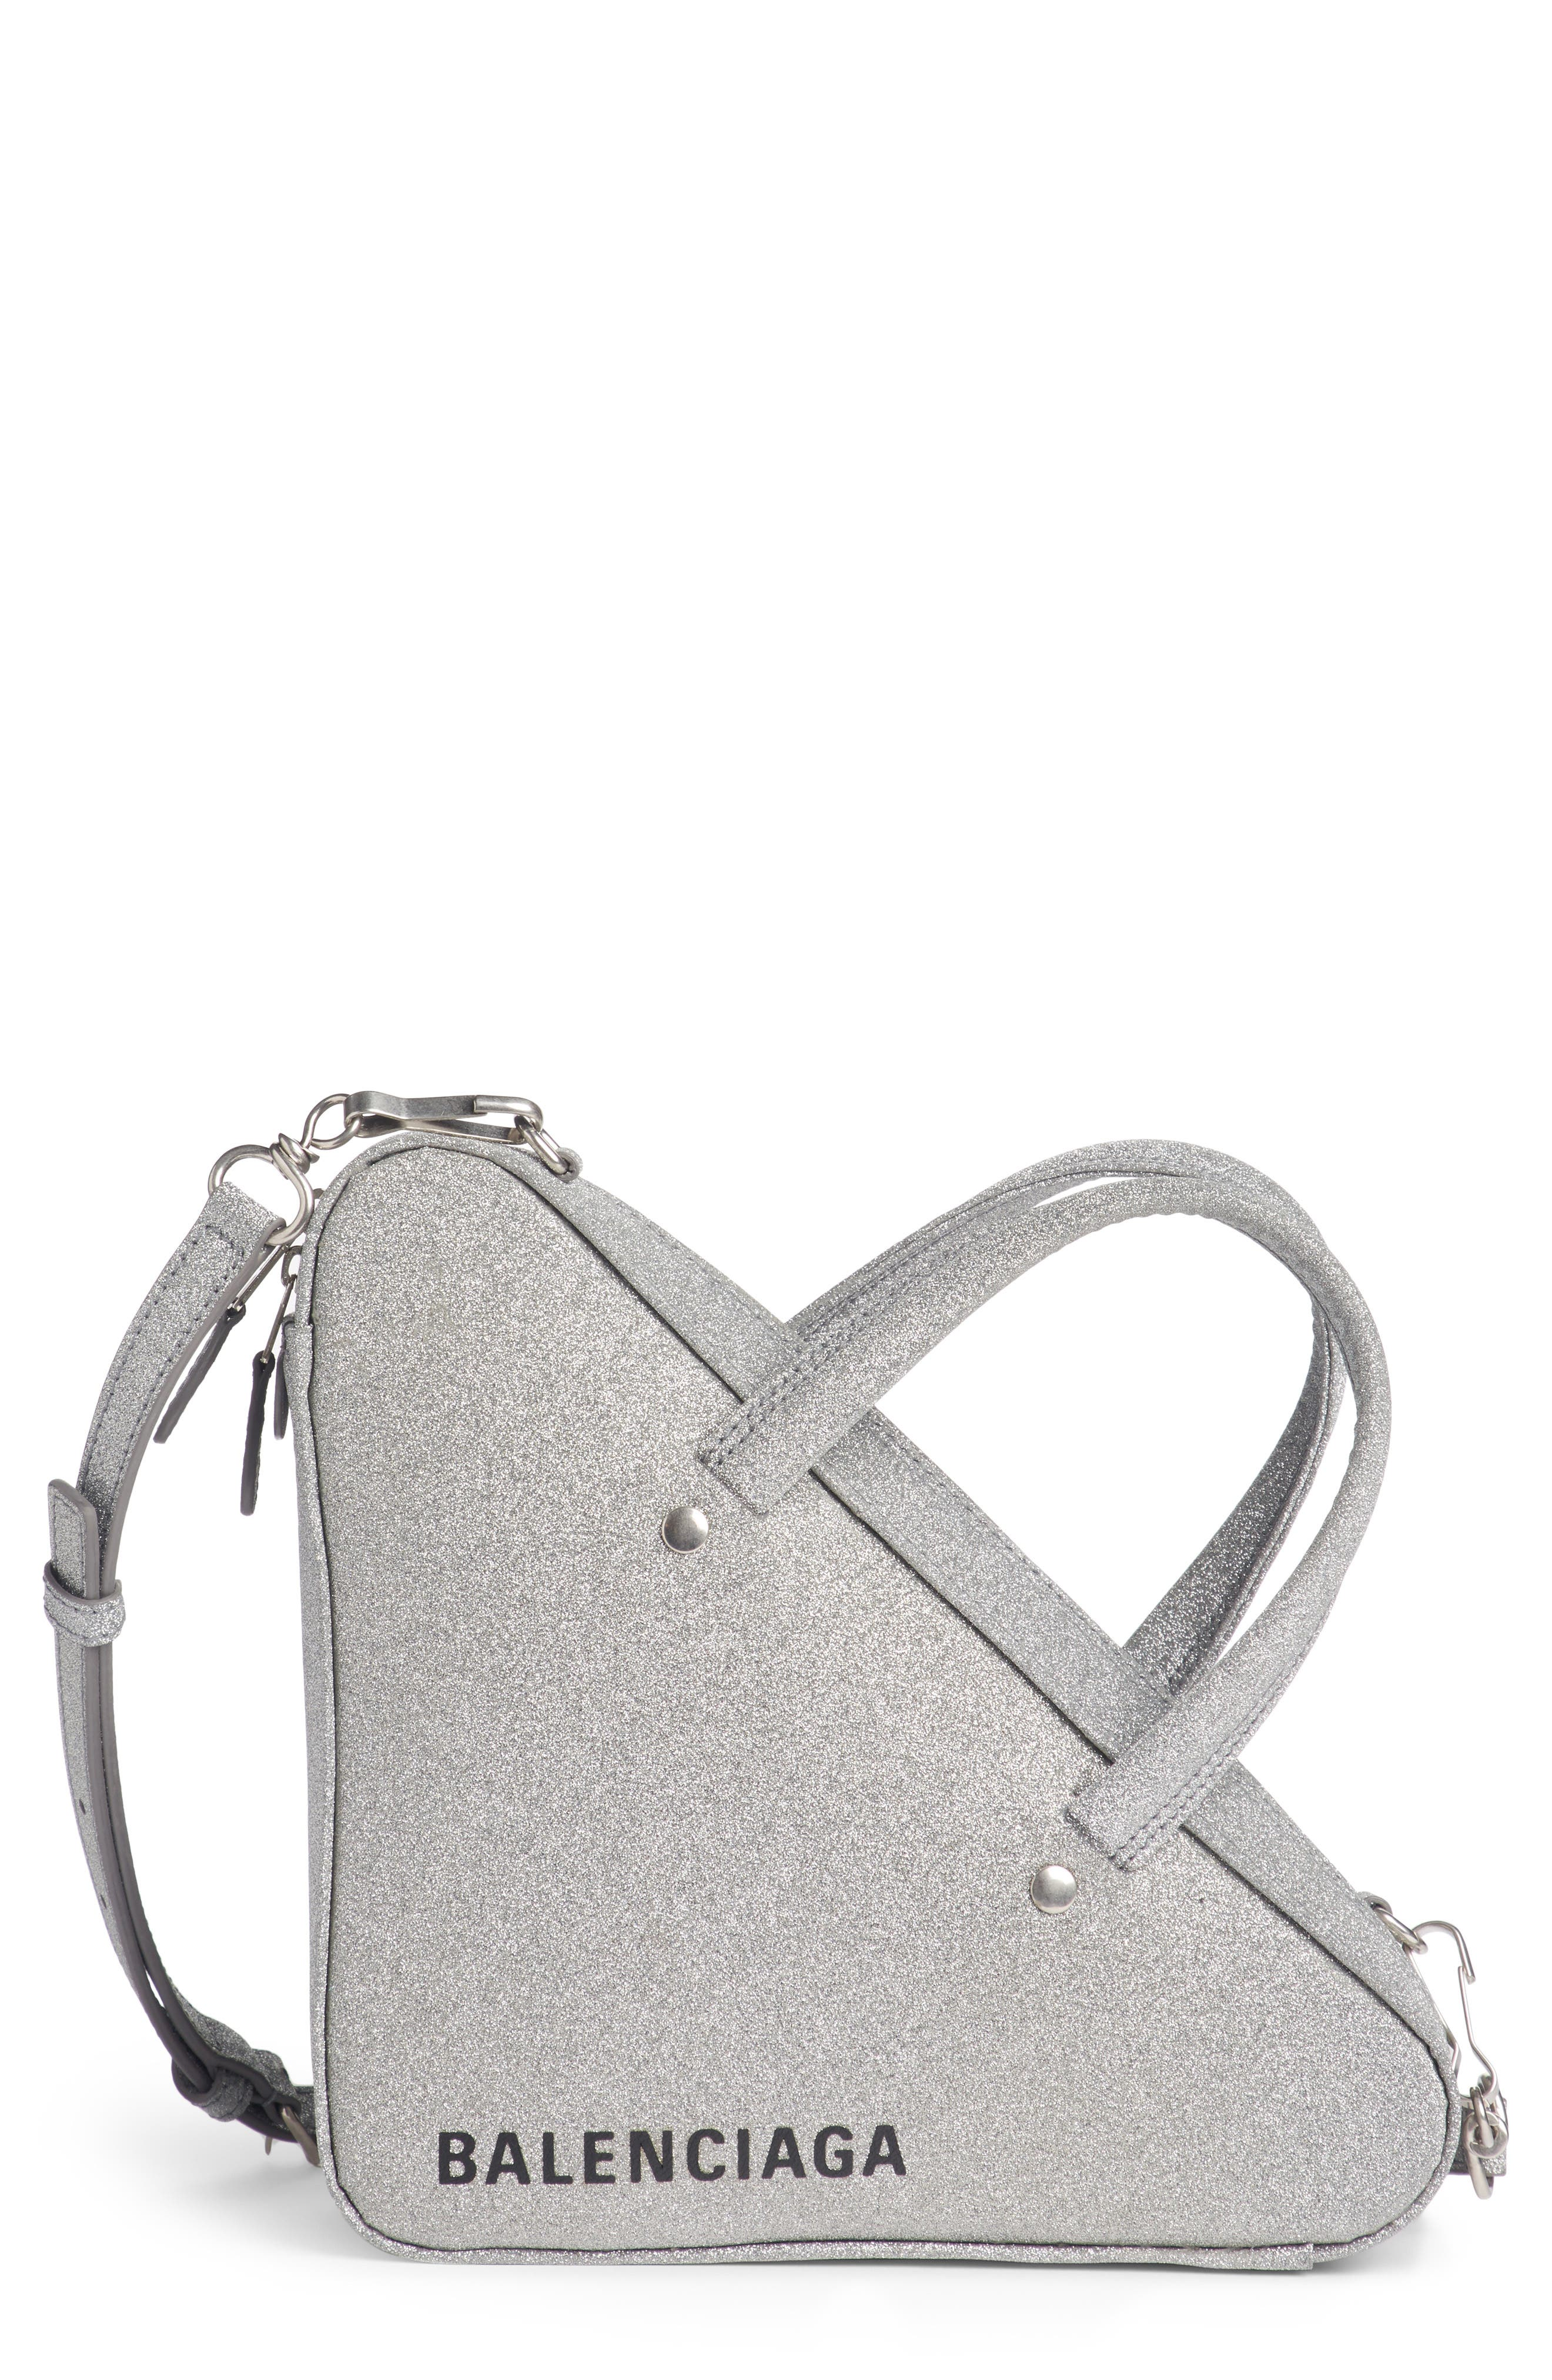 Extra Small Glitter Triangle Leather Bag,                         Main,                         color, Argent/ Noir